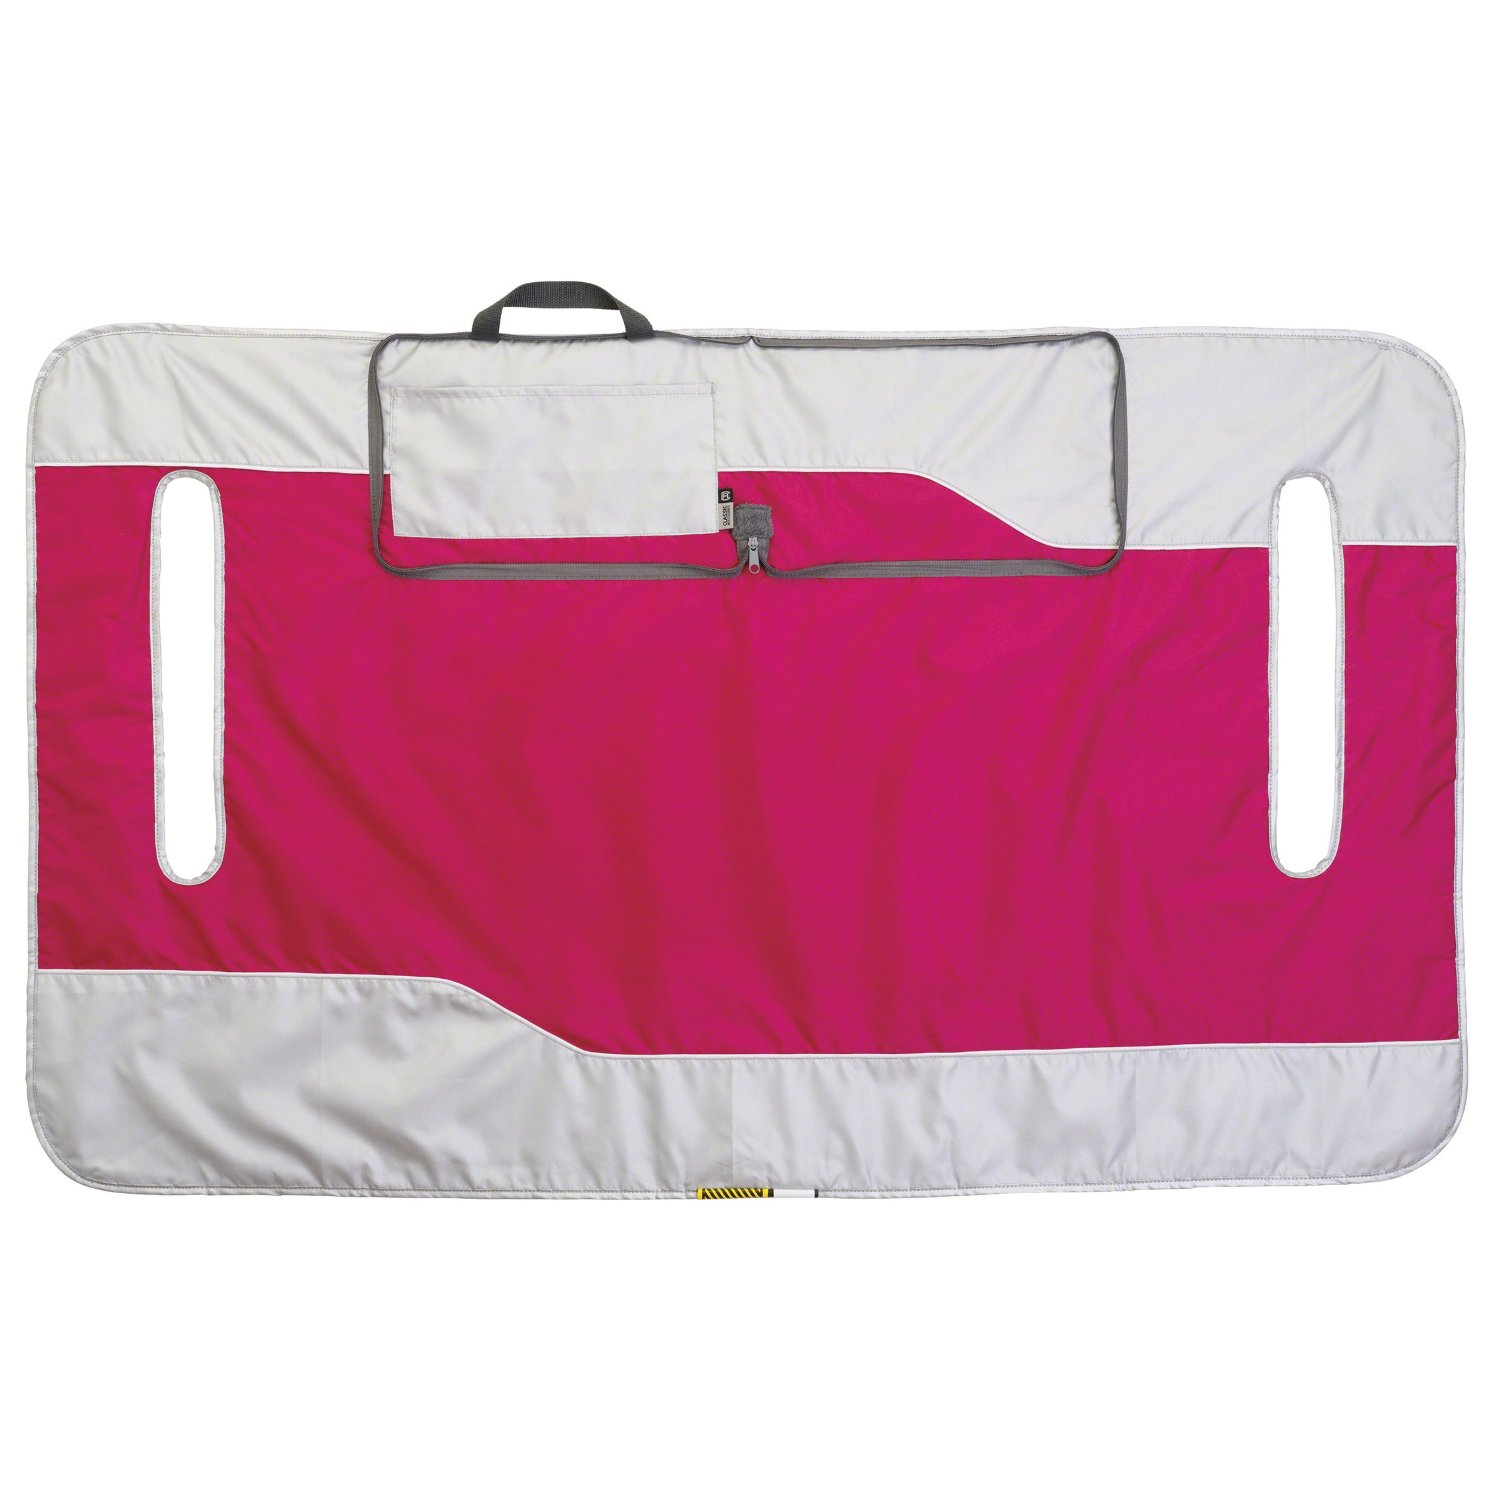 Excellent Golf Cart Seat Blanket Provides You With Instant Protection Caraccident5 Cool Chair Designs And Ideas Caraccident5Info